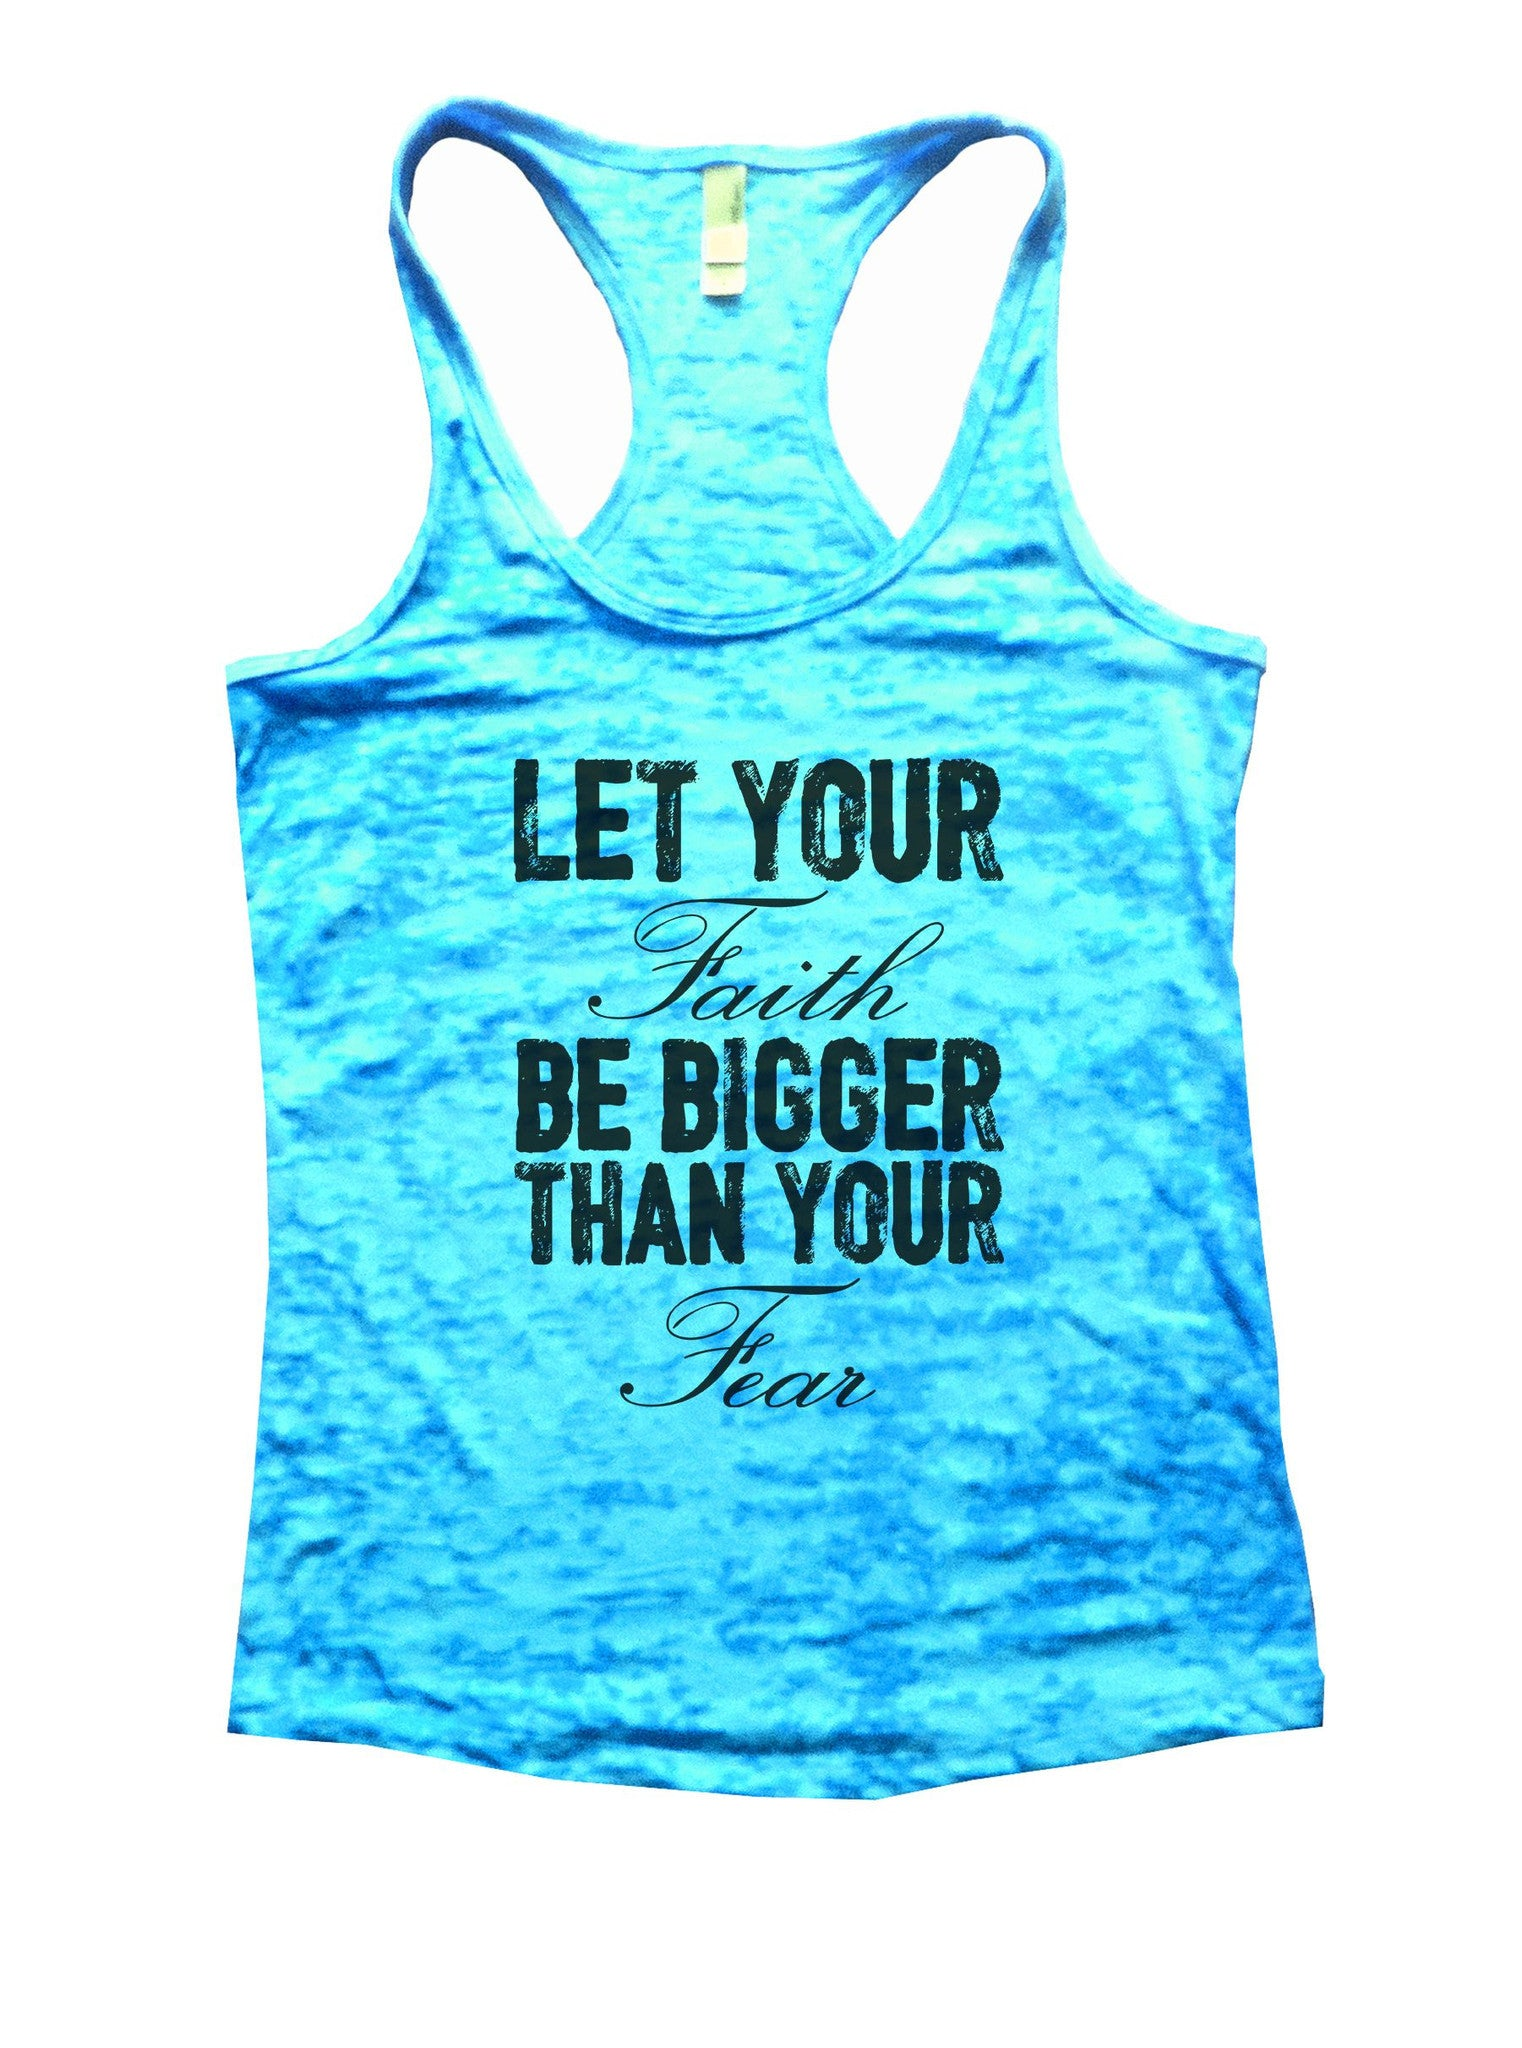 Let Your Faith Be Bigger Than Your Fear Burnout Tank Top By BurnoutTankTops.com - 861 - Funny Shirts Tank Tops Burnouts and Triblends  - 4